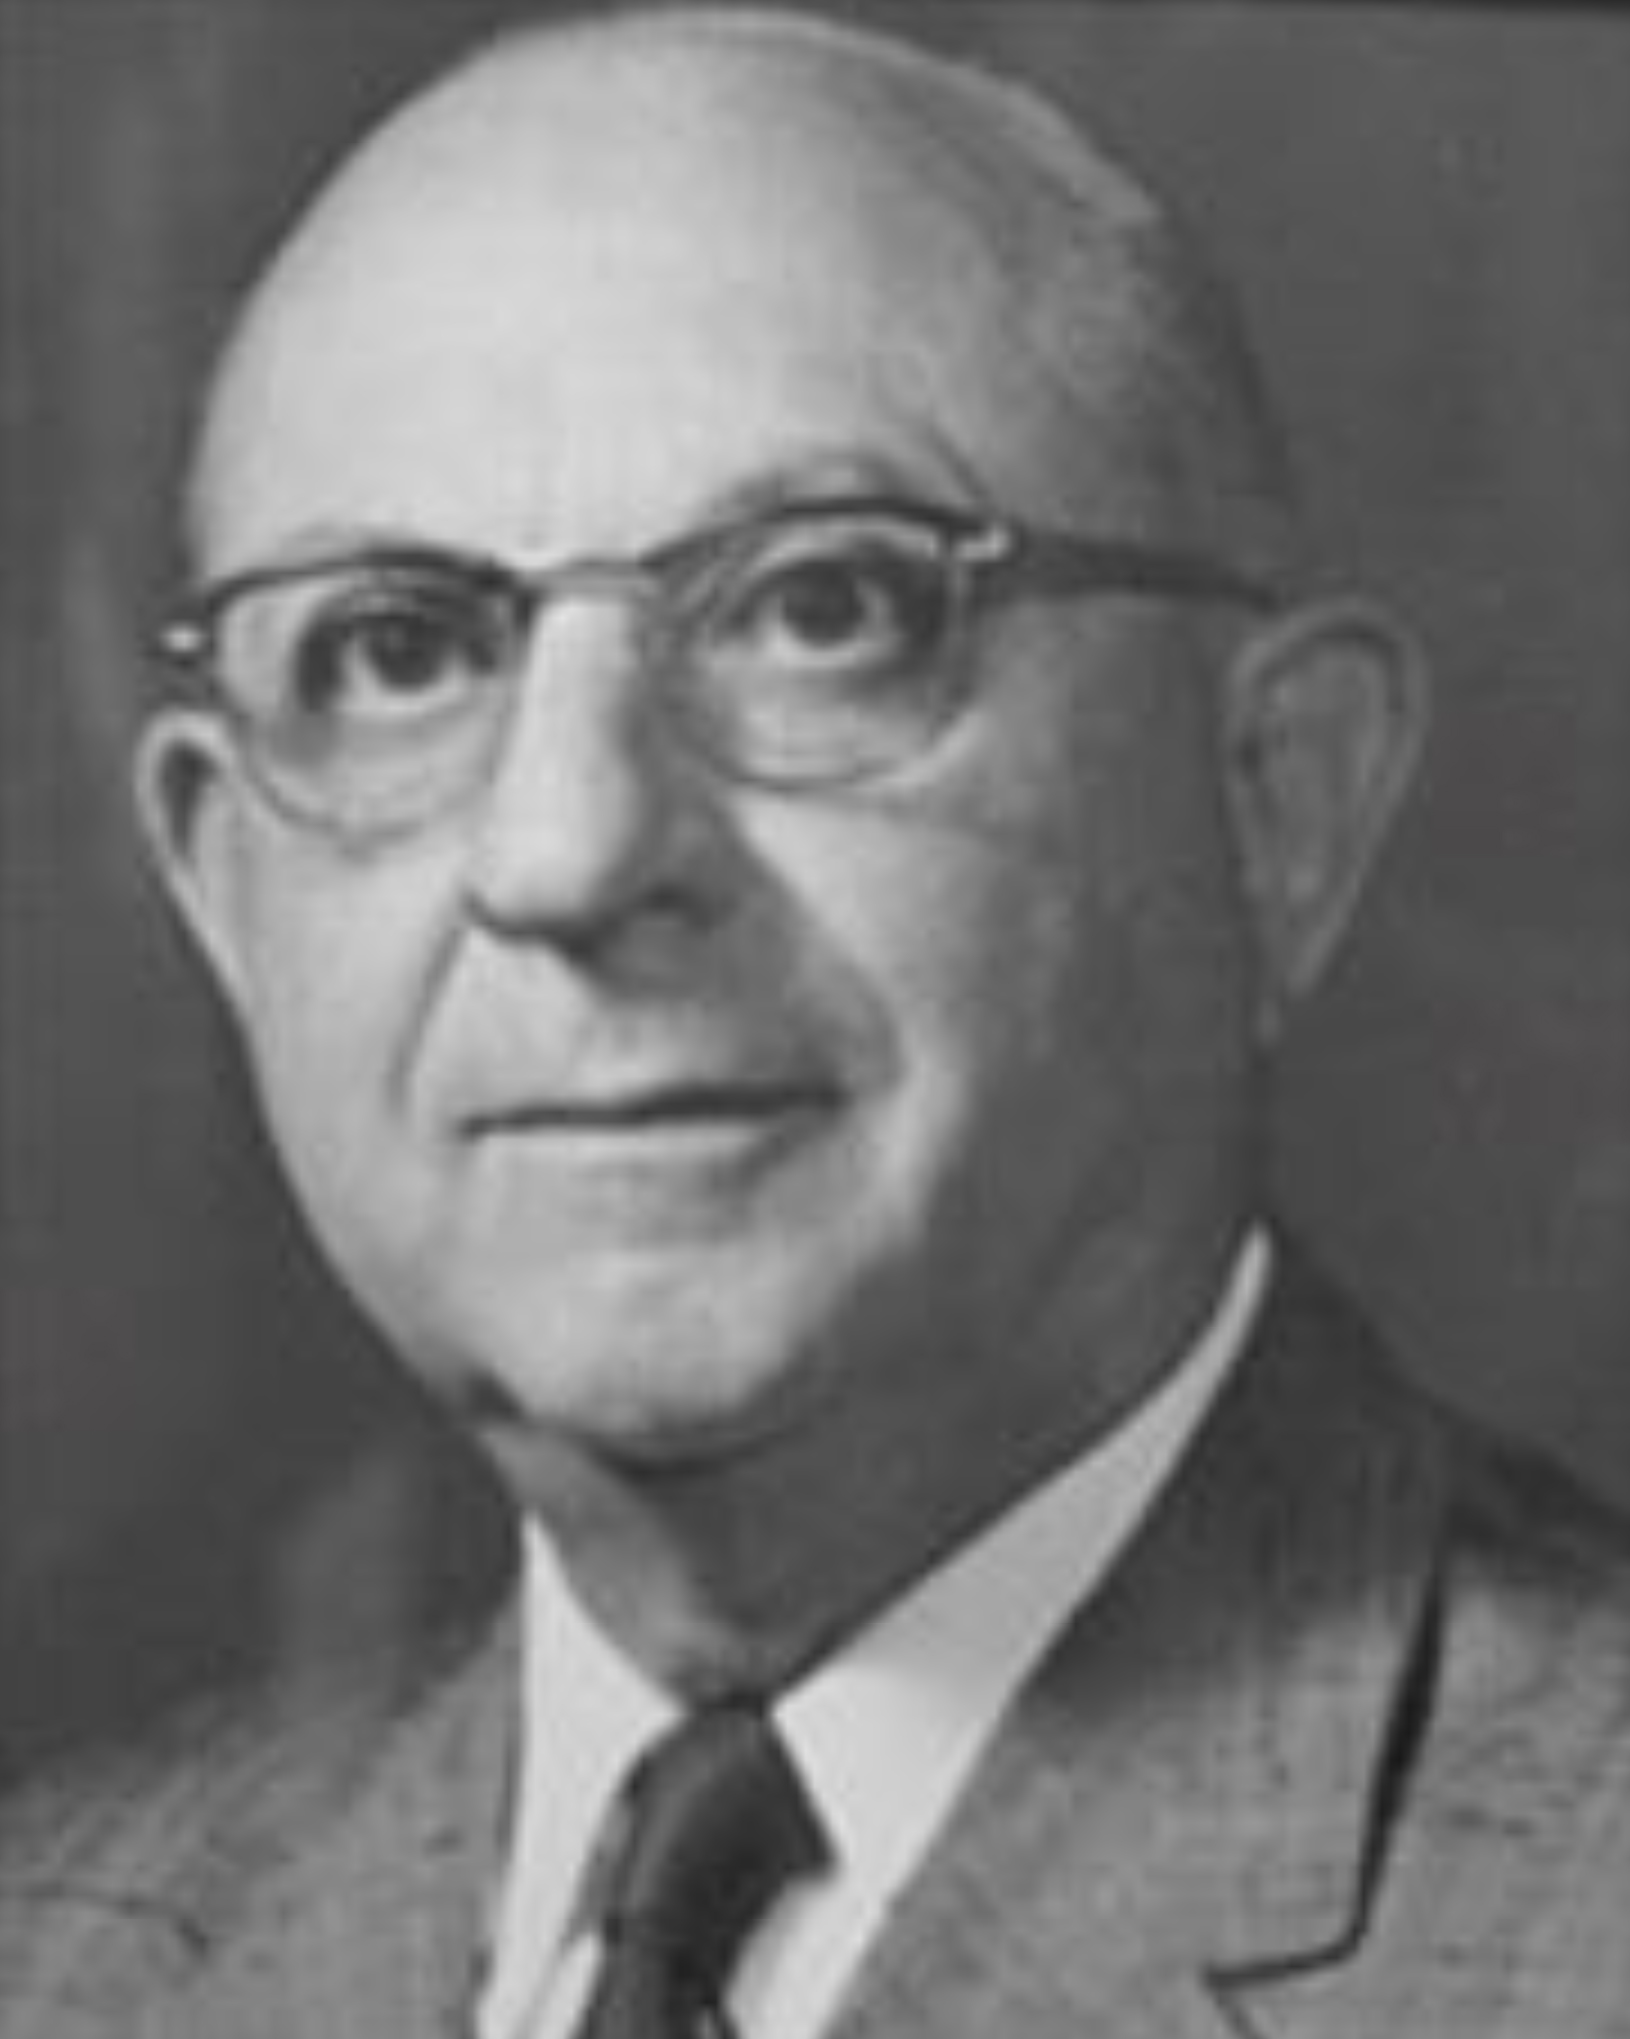 CLARENCE W. RICE